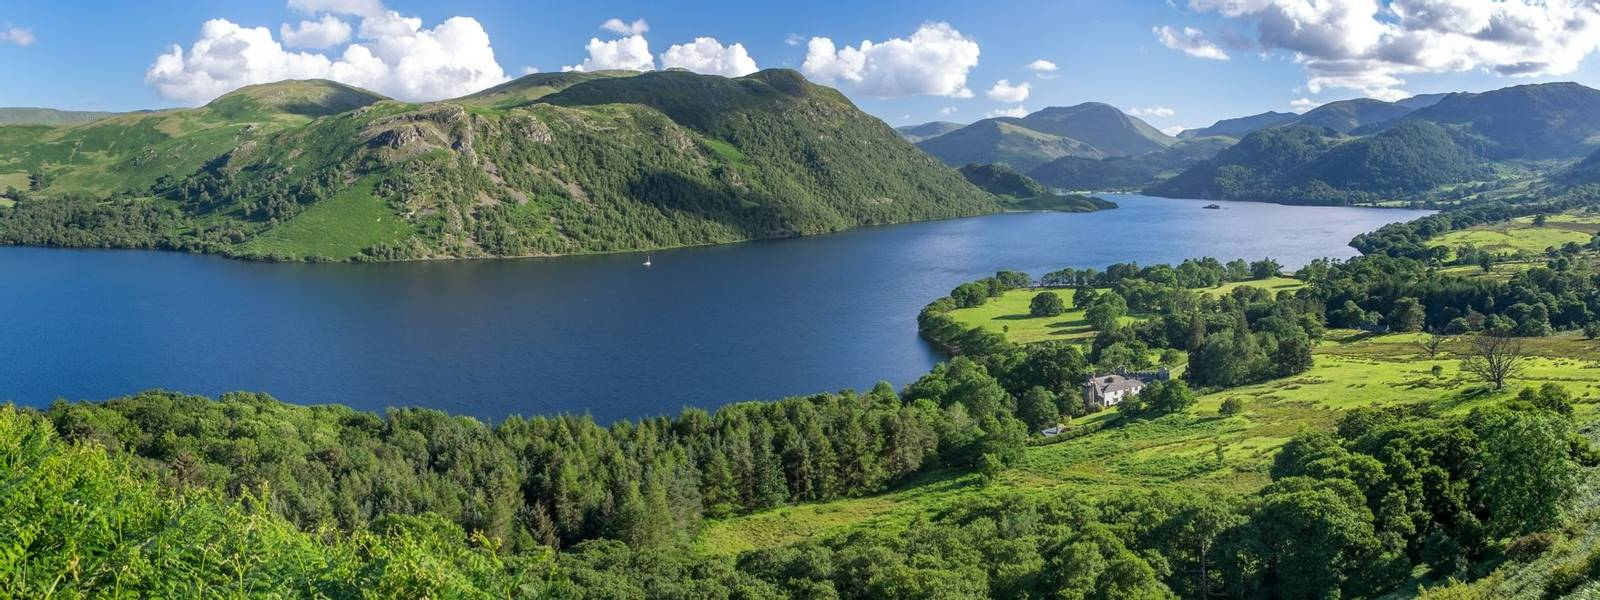 View of Ullswater Lake, Lake District, UK